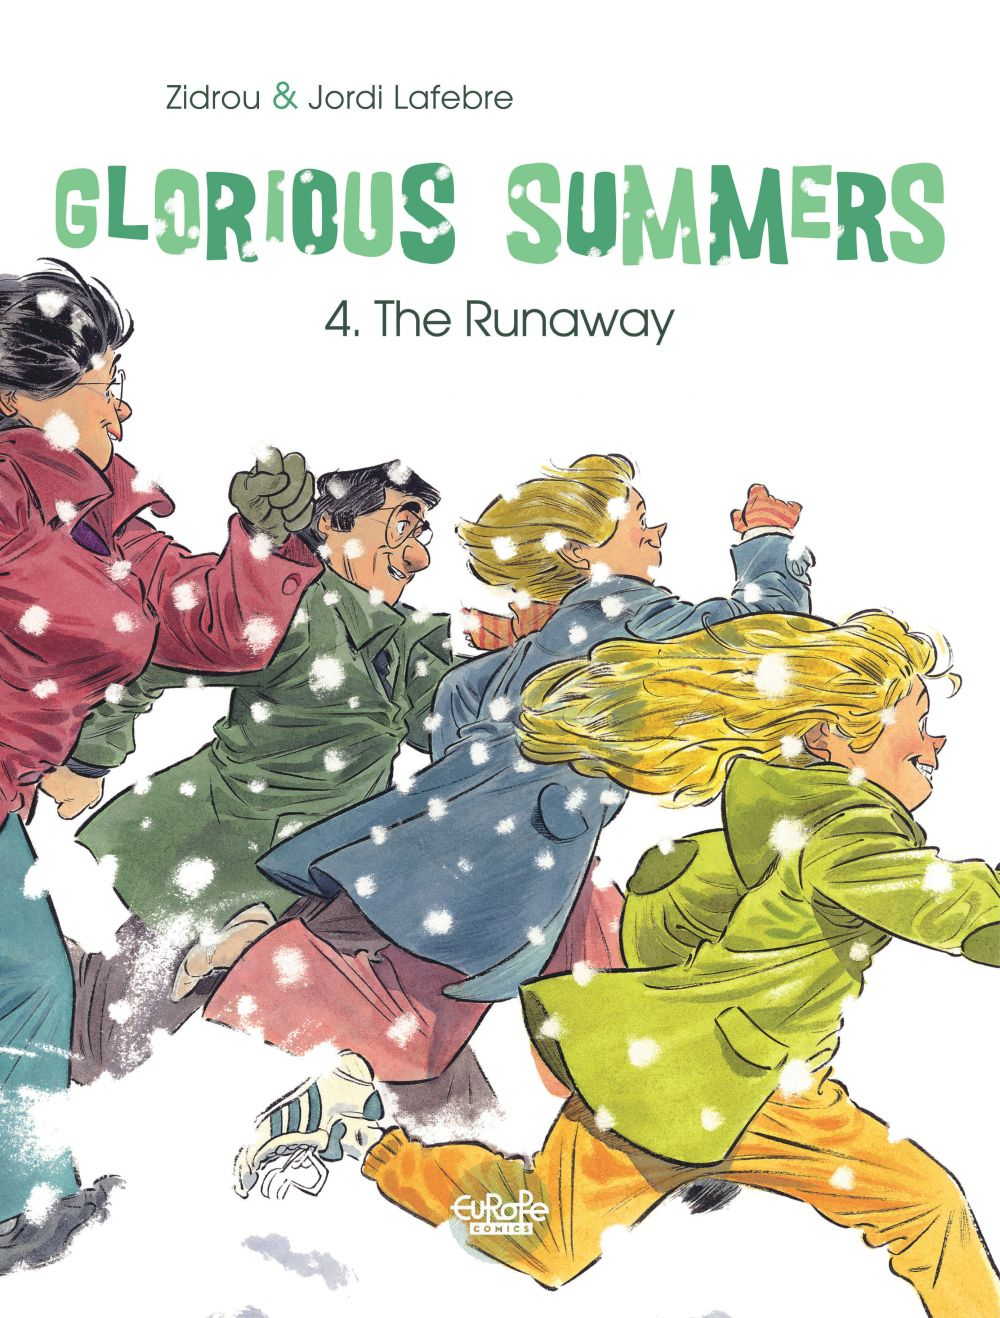 Glorious Summers 4. The Runaway